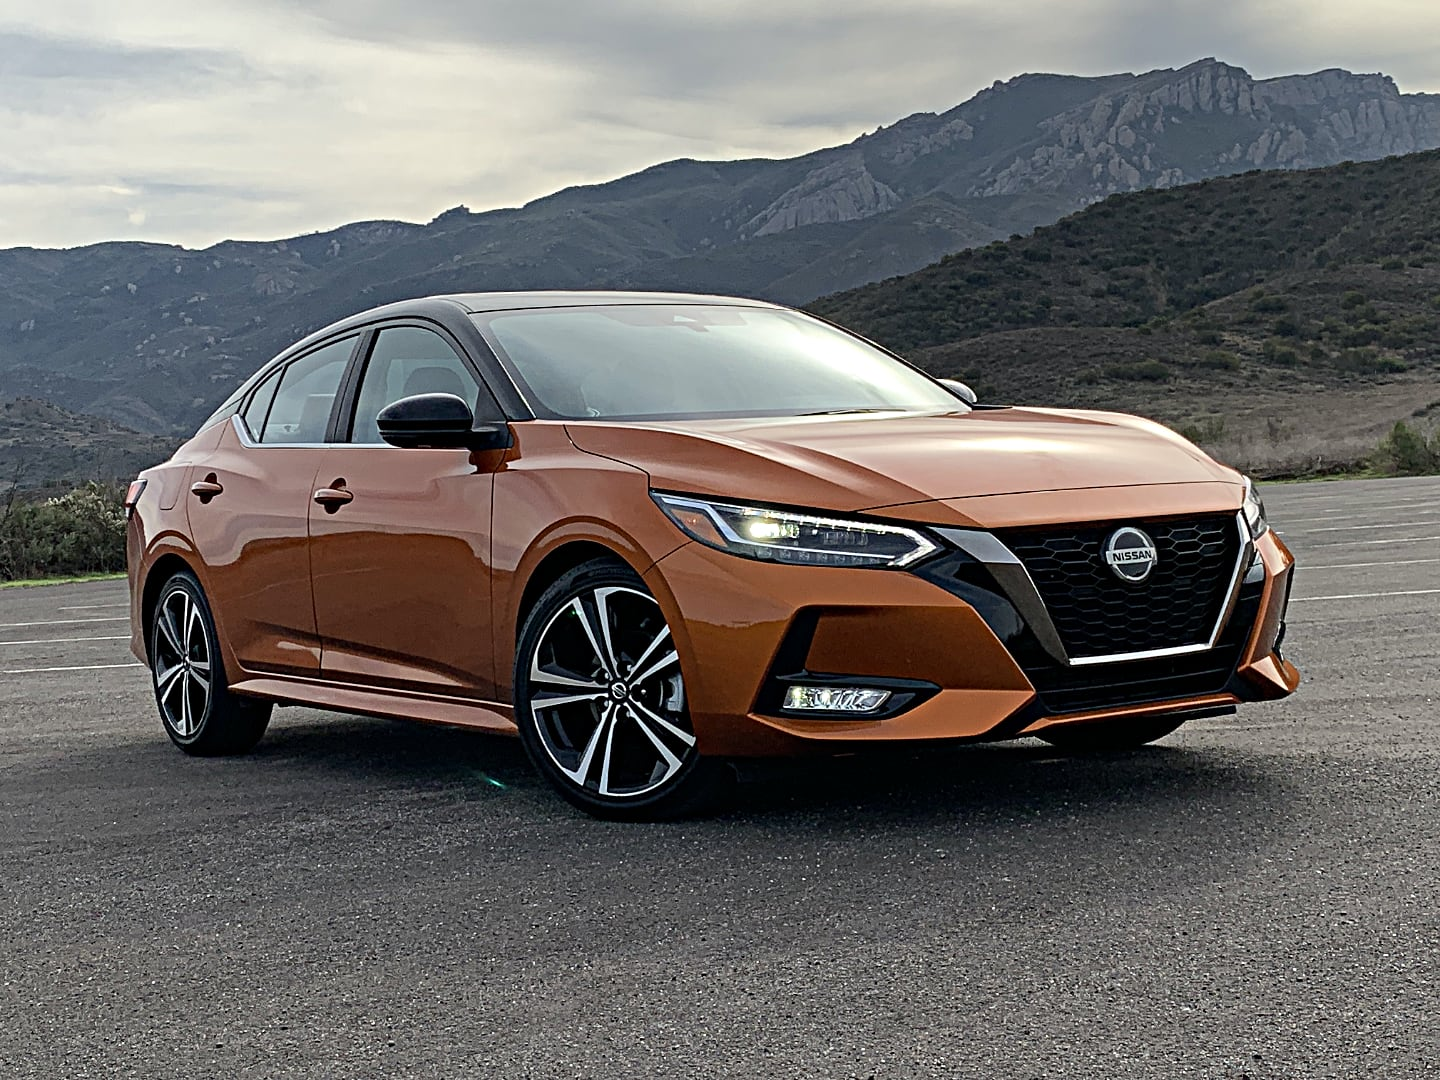 Topworldauto Photos Of Nissan Sentra Photo Galleries See 3 user reviews, 16 photos and great deals for 2020 nissan sentra. topworldauto photos of nissan sentra